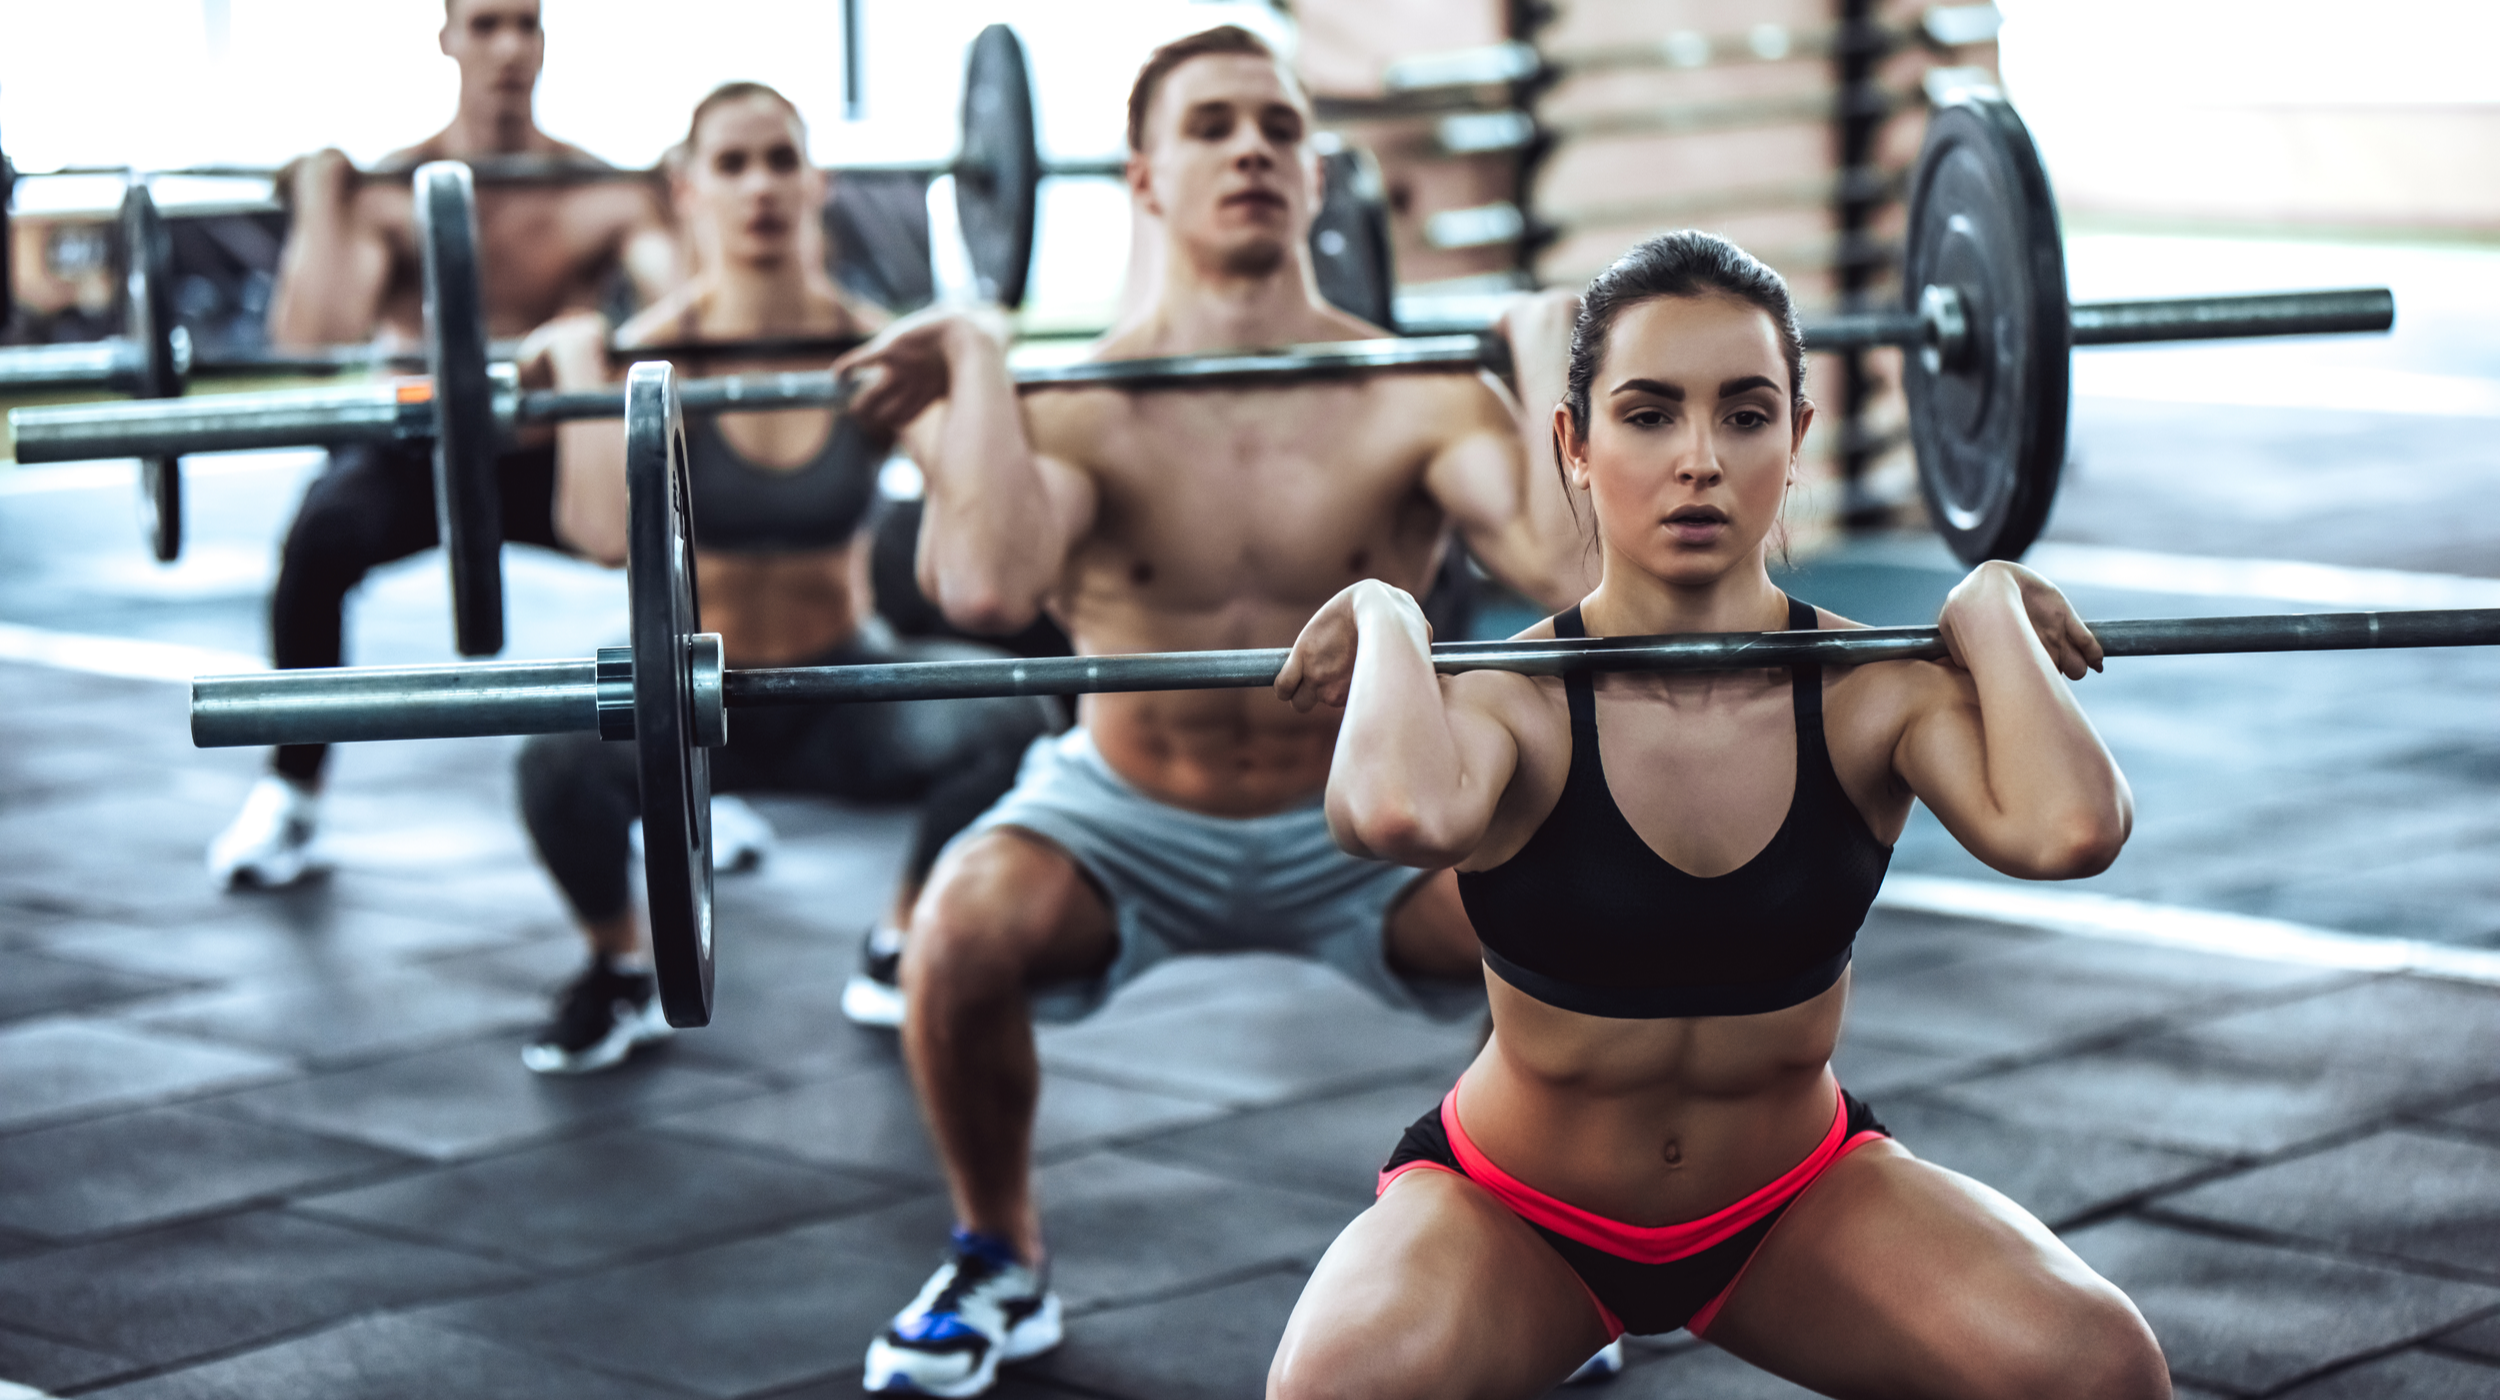 Why we Caution People to Stay Away from CrossFit